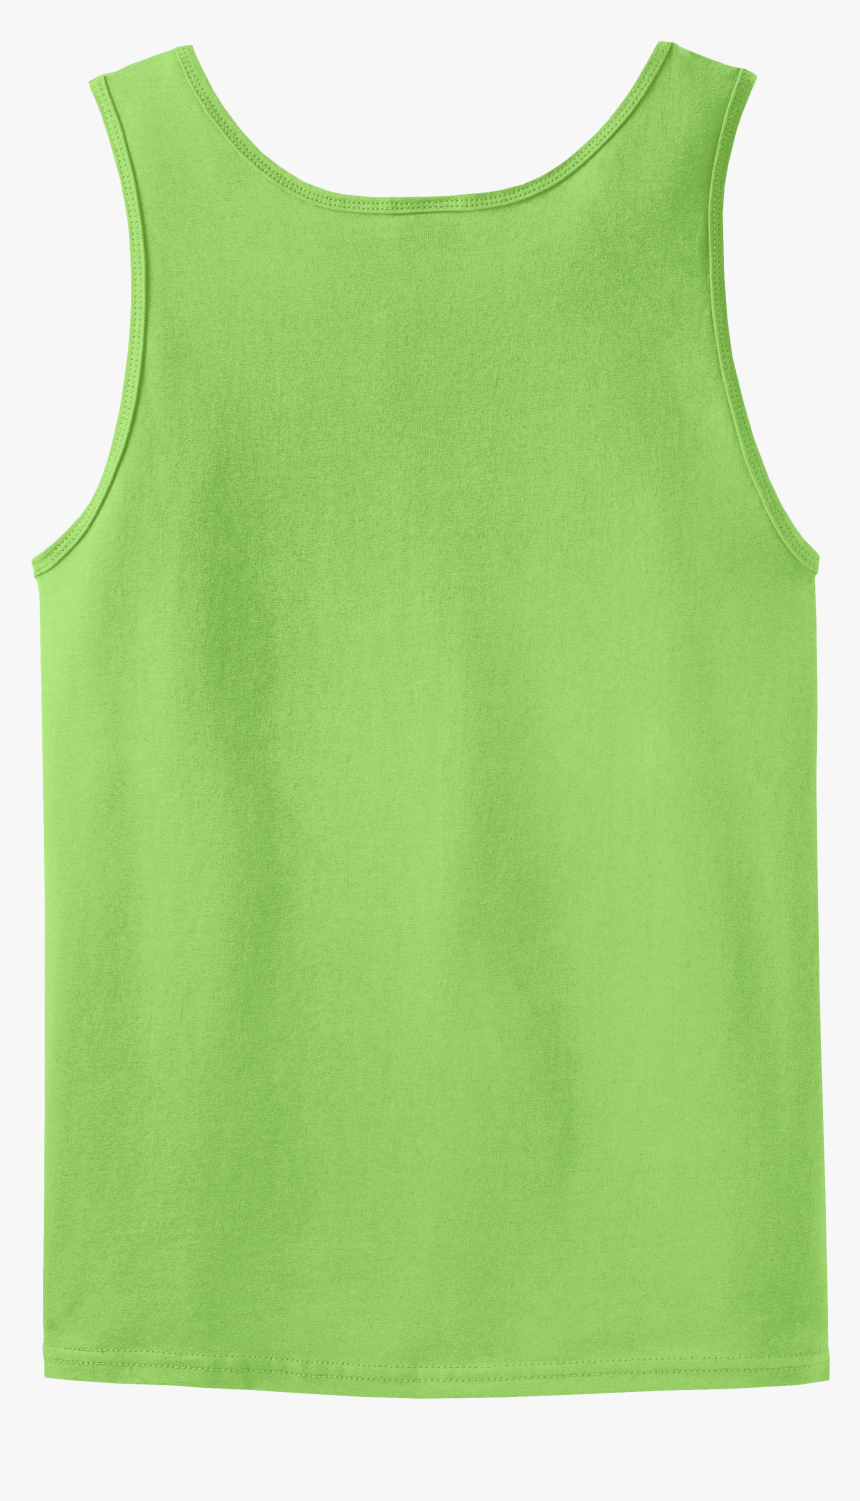 Ultra Cotton ® Tank Top Screen Print, Embroidery Services, HD Png Download, Free Download